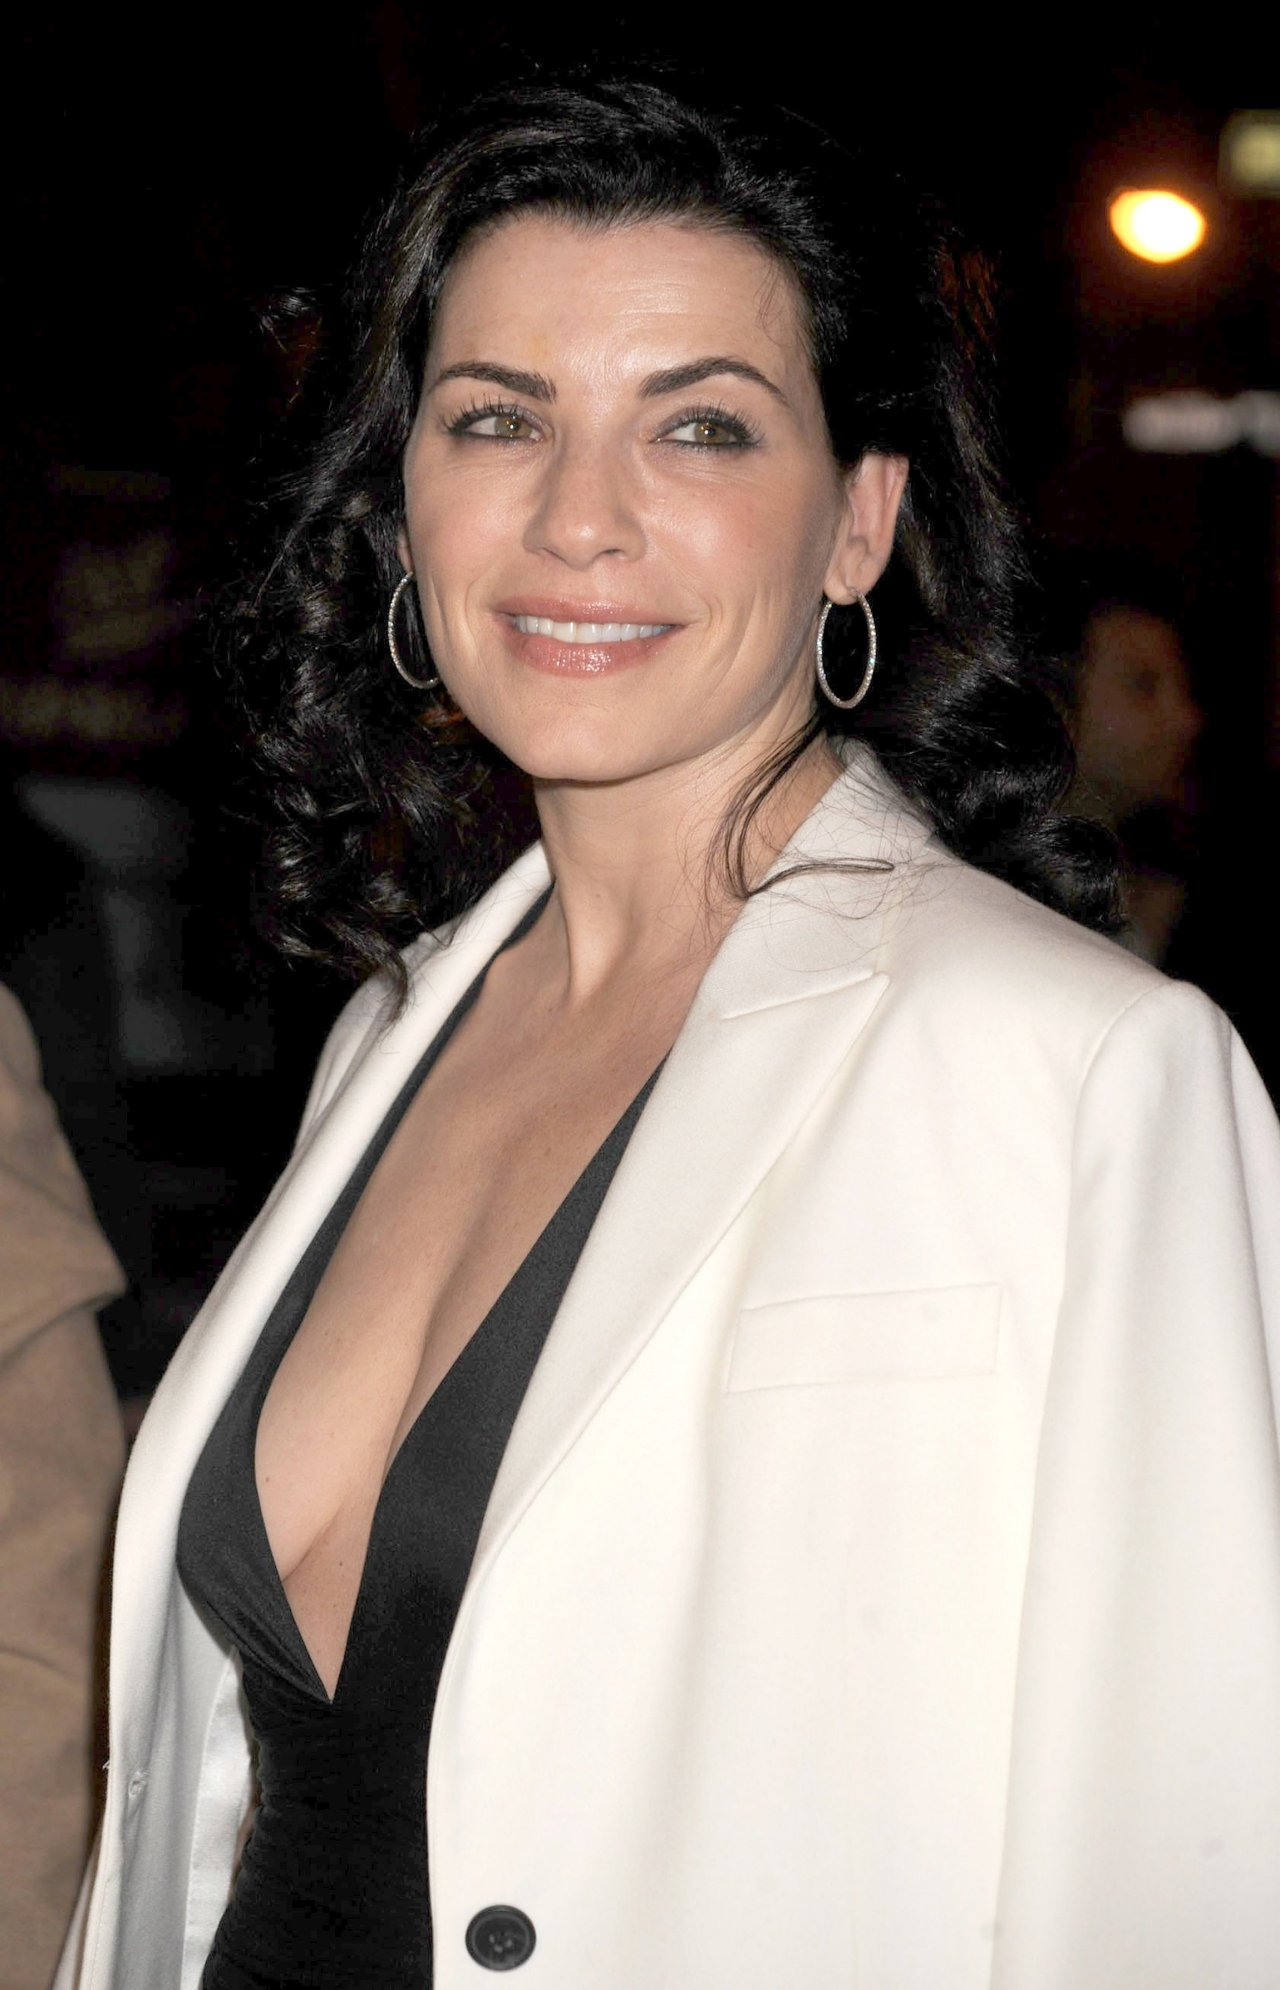 Julianna Margulies new